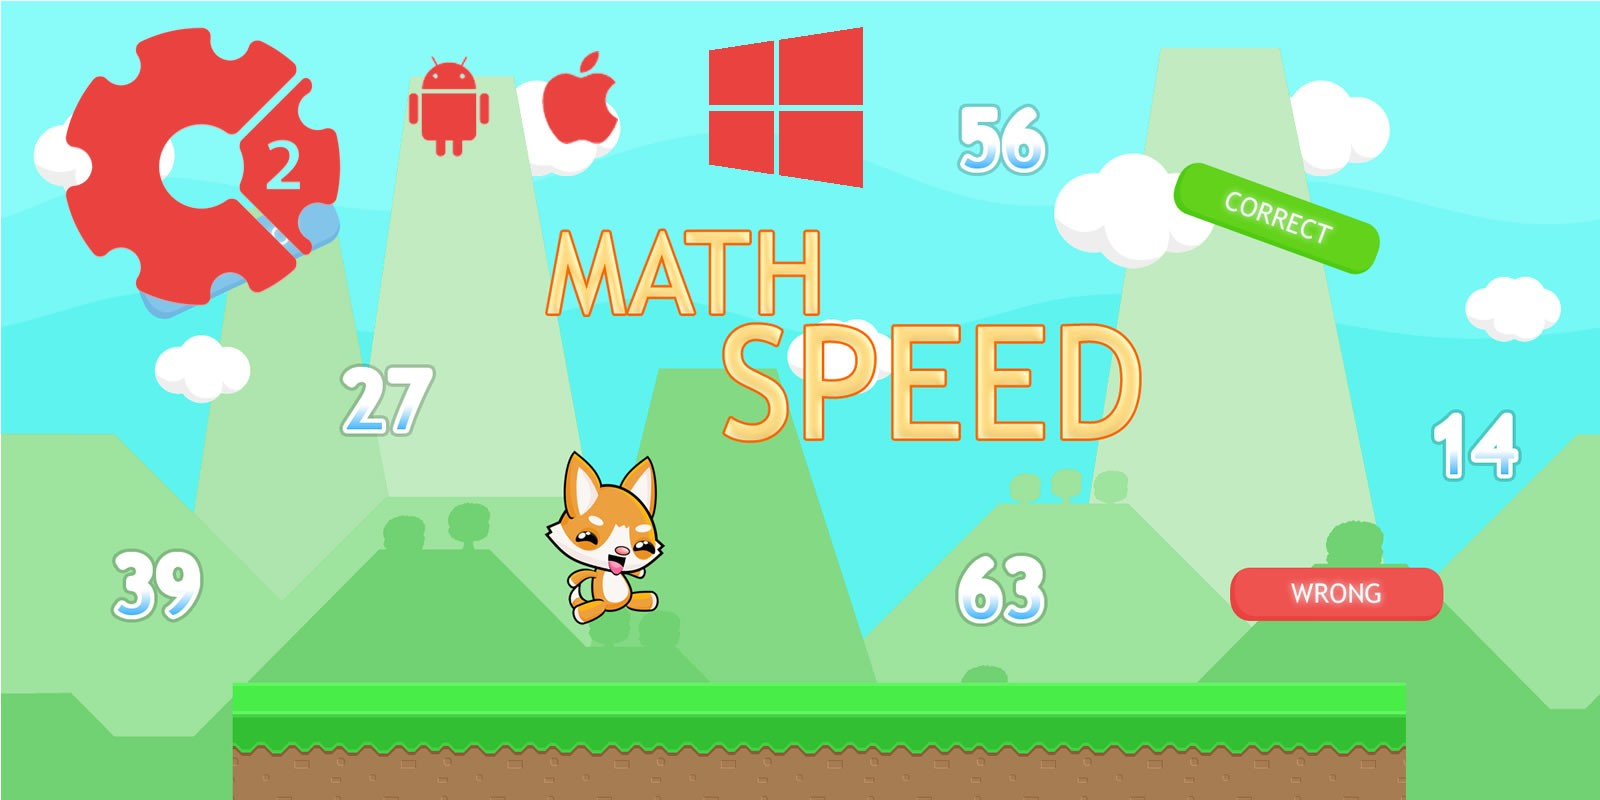 Math Speed - Construct 2 Game Template